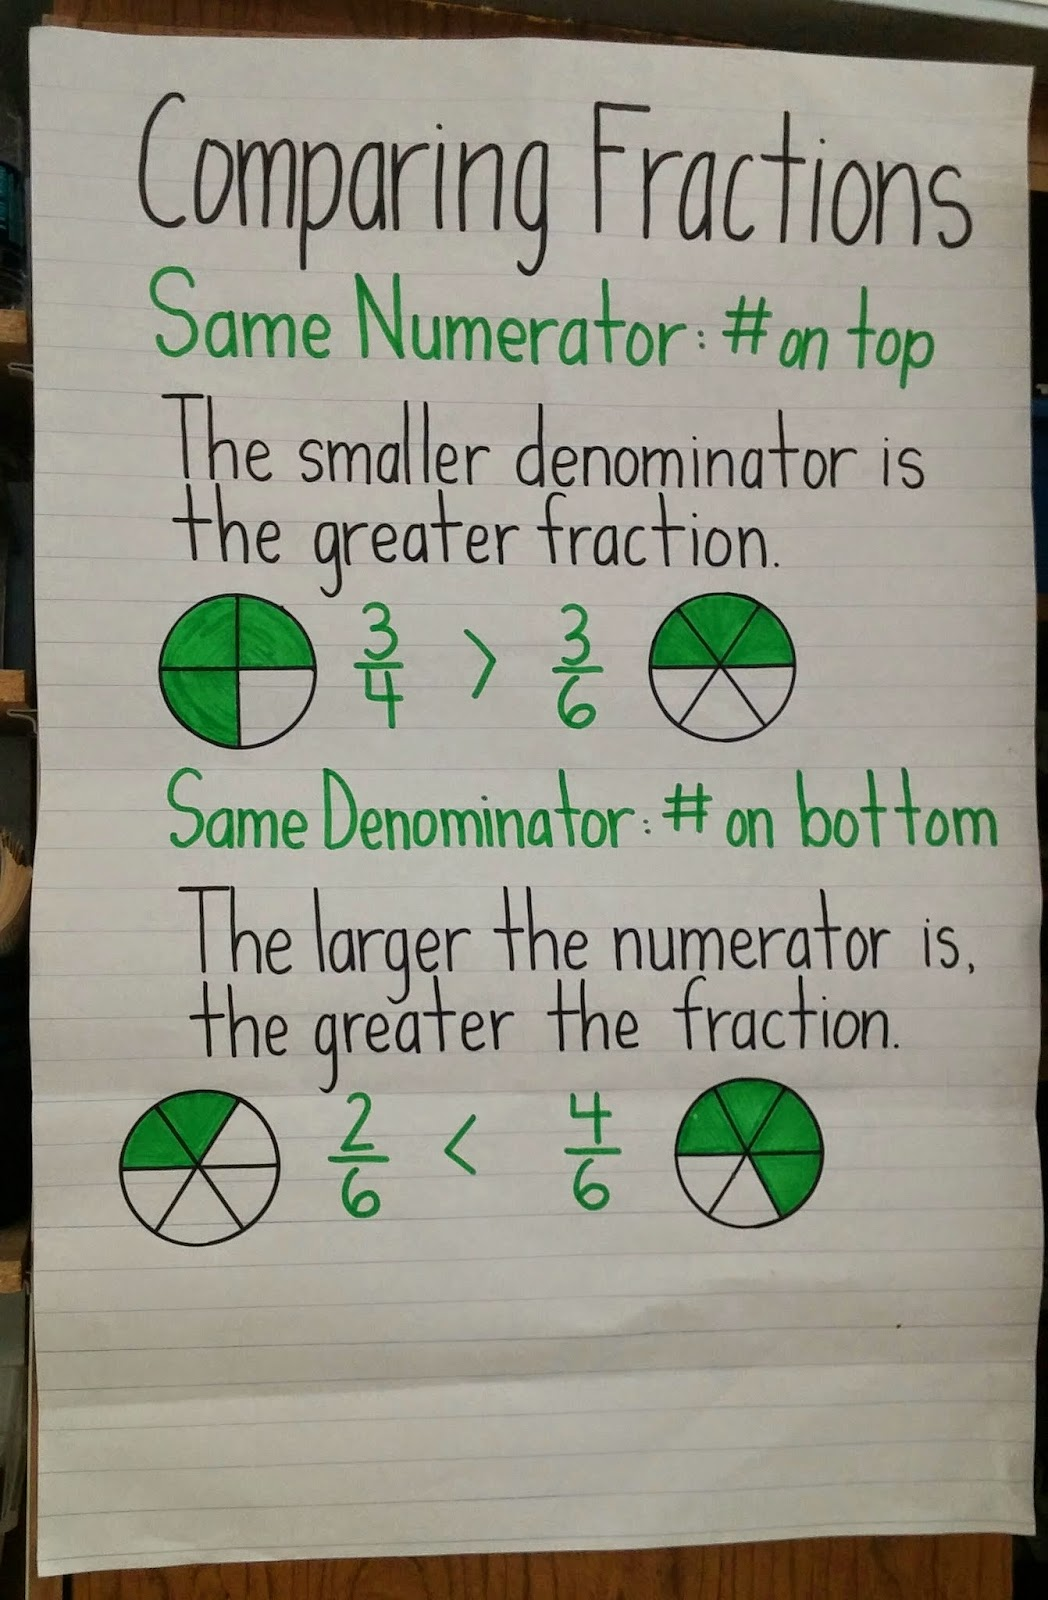 Comparing Fractions anchor chart - This is confusing, so it would ...